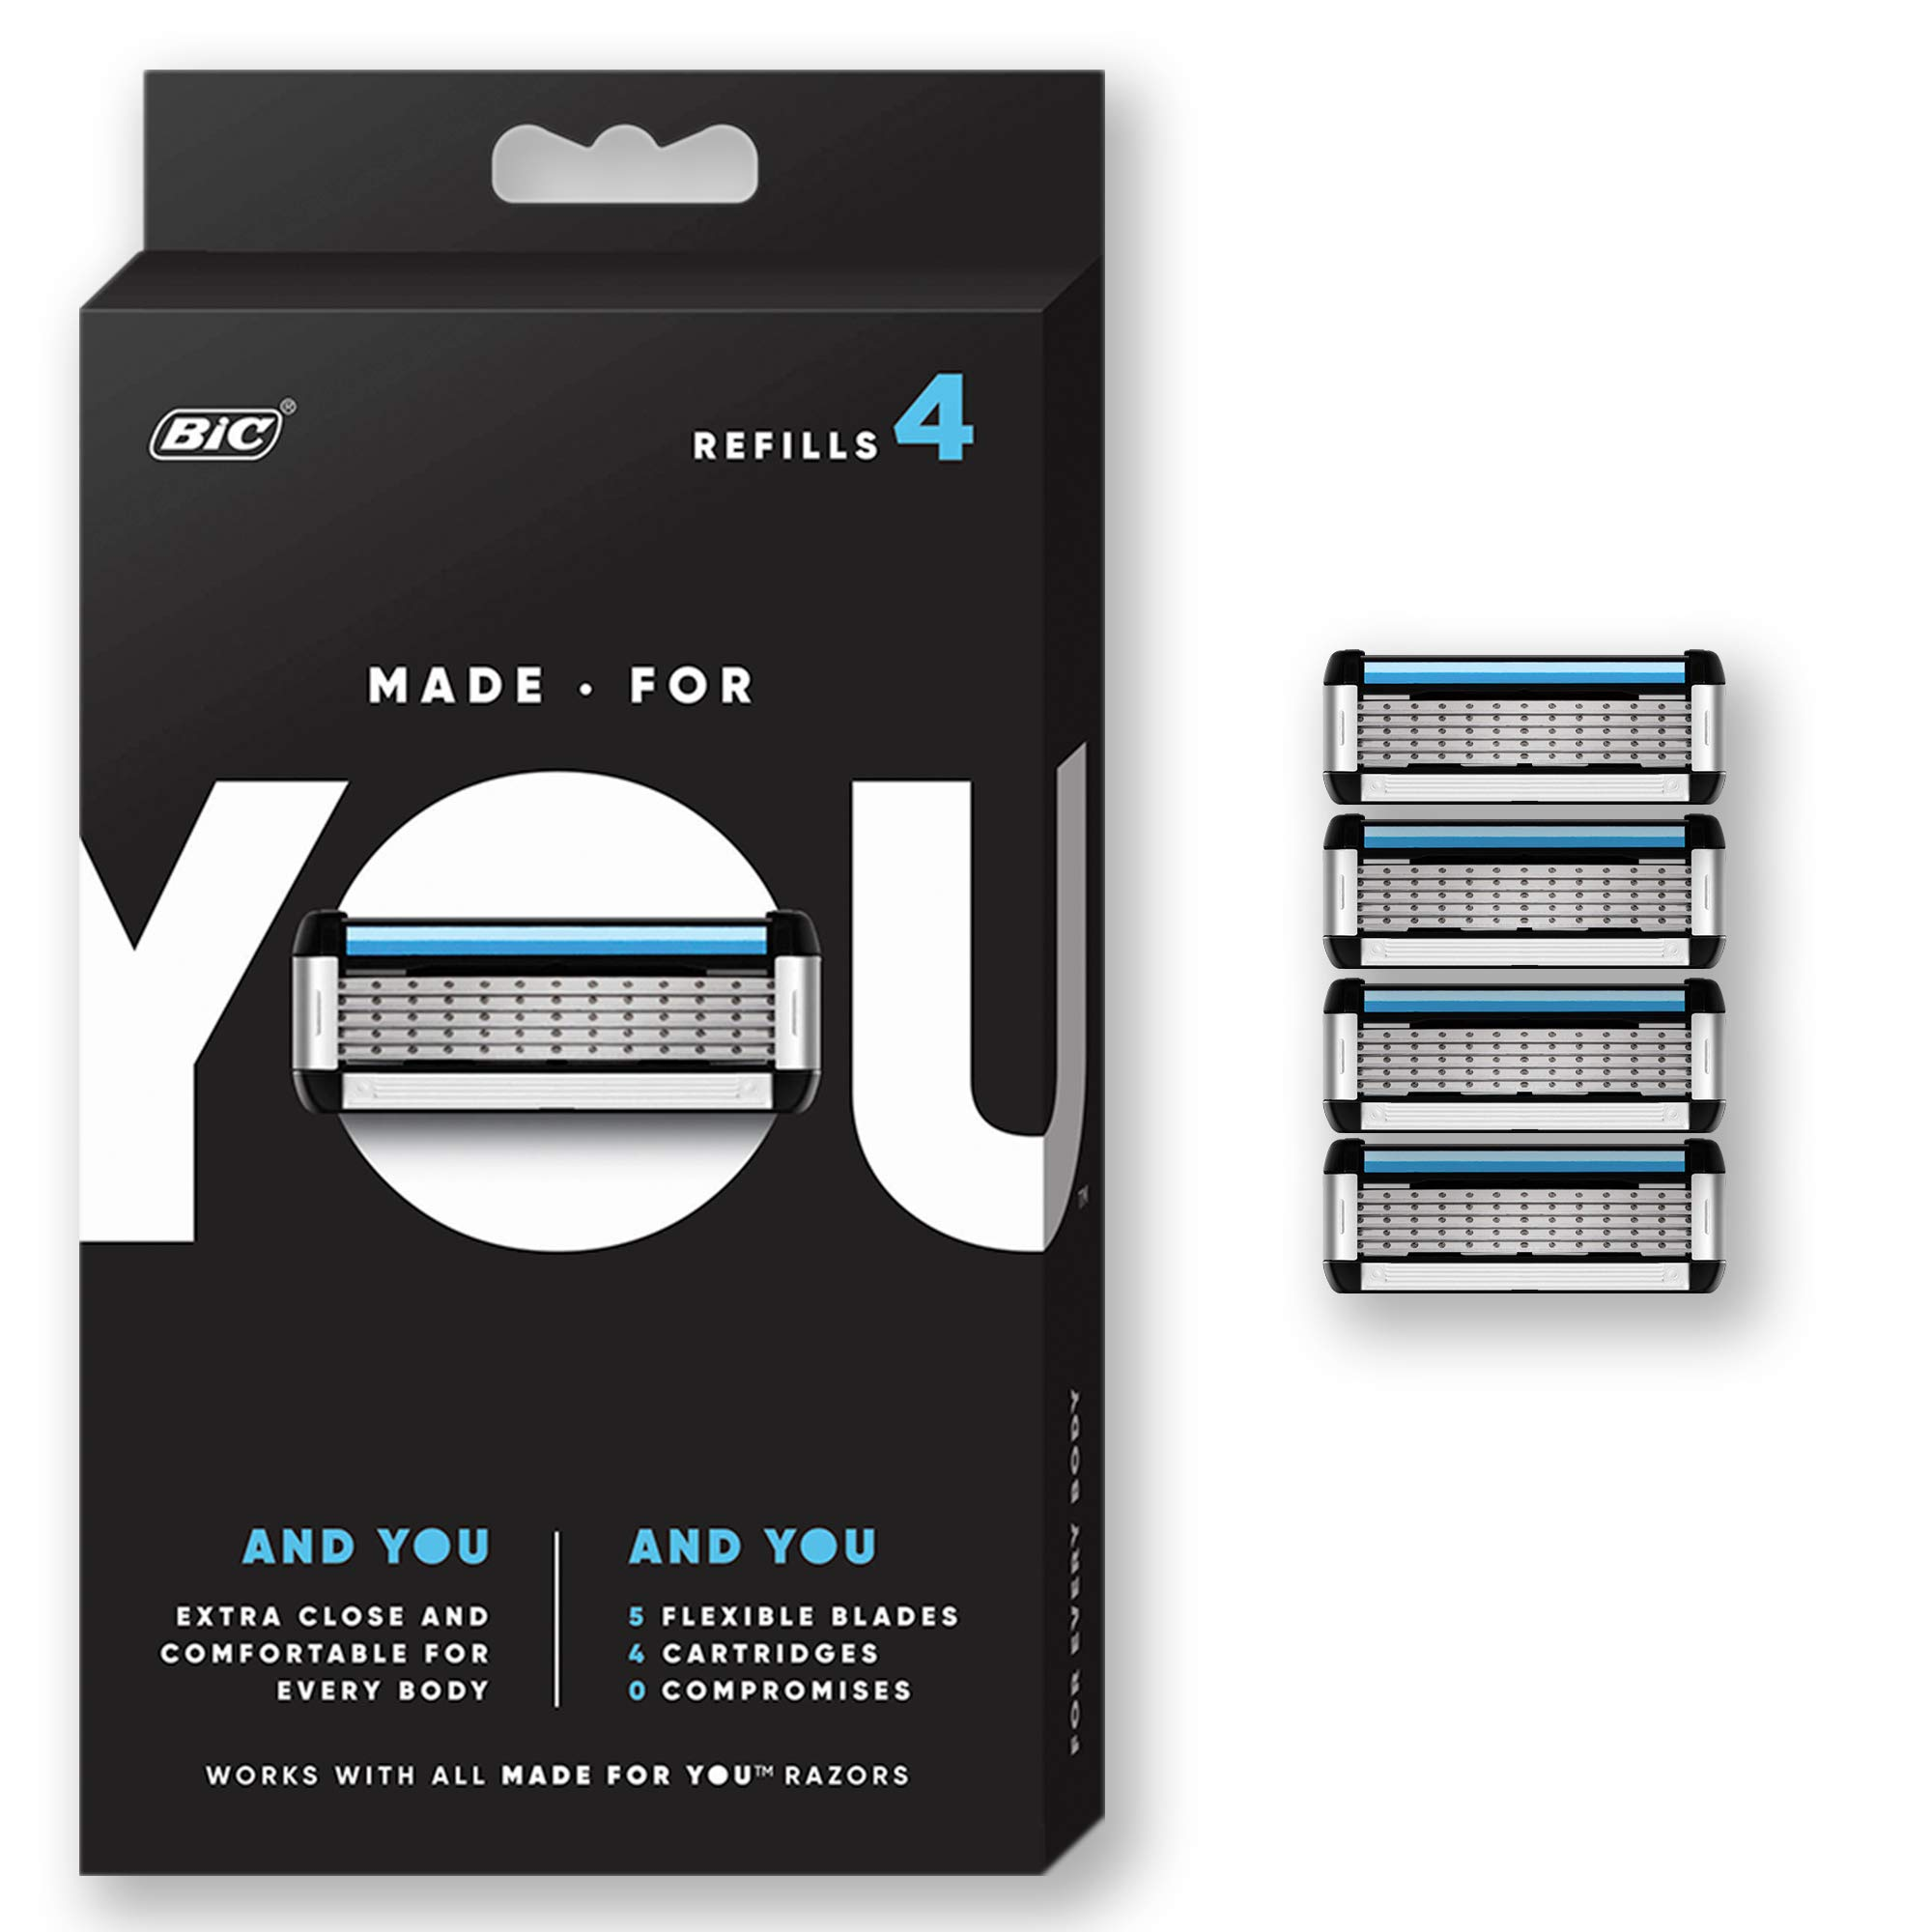 Made For You by BIC Shaving Razor Blades for Every Body - Men and Women, 4 Count - Refill Cartridges with 5 Blades for a Close Shave with Aloe Vera and Vitamin E for Smooth Glide